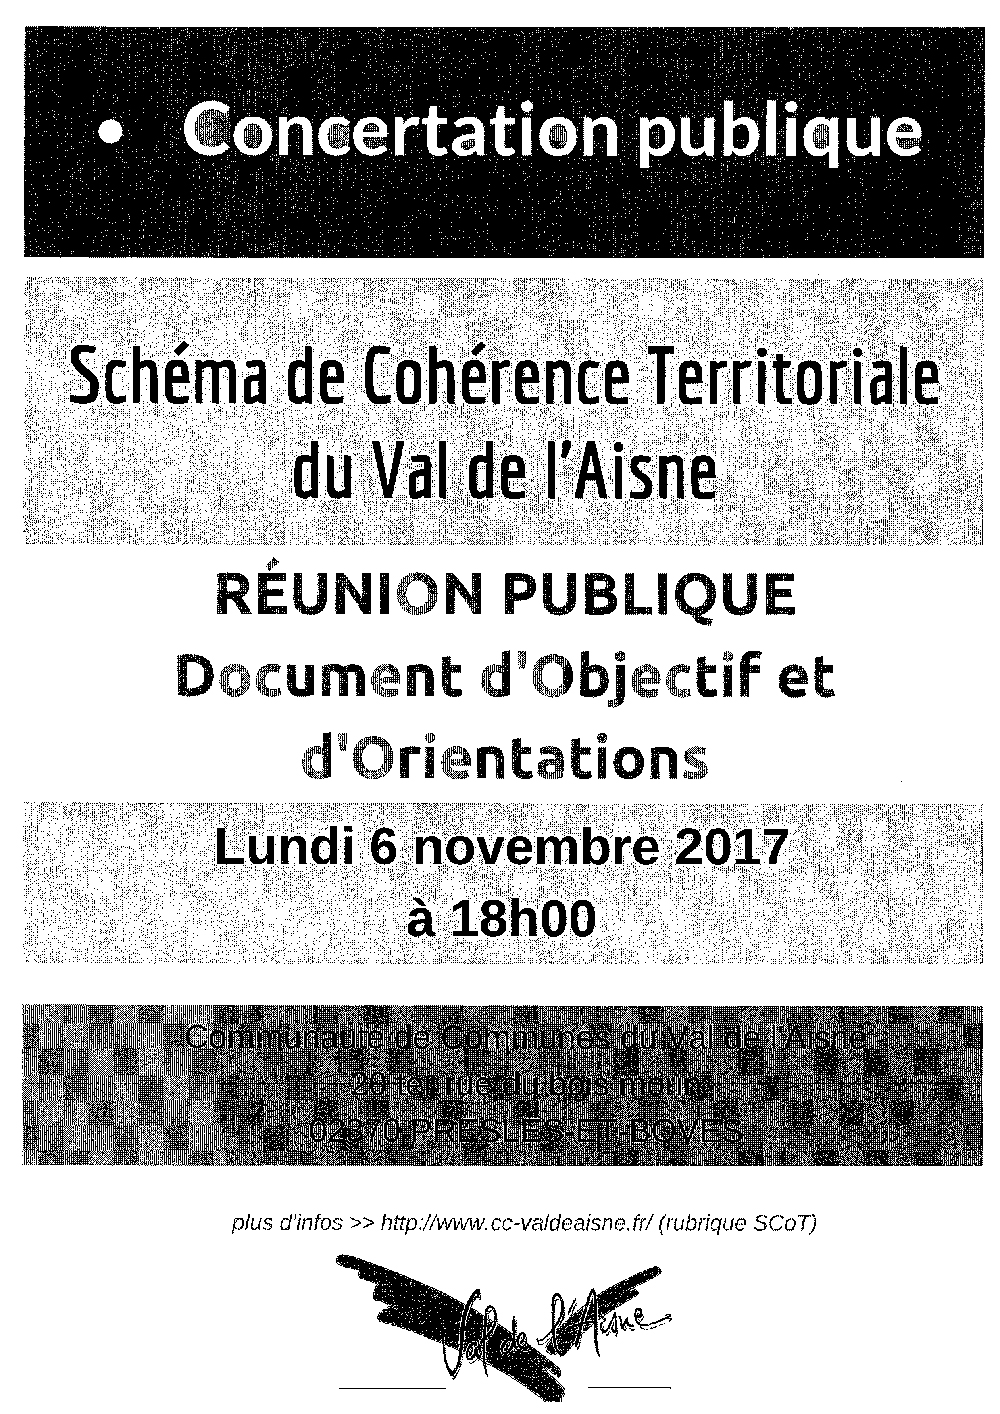 REUNION PUBLIQUE SCOT